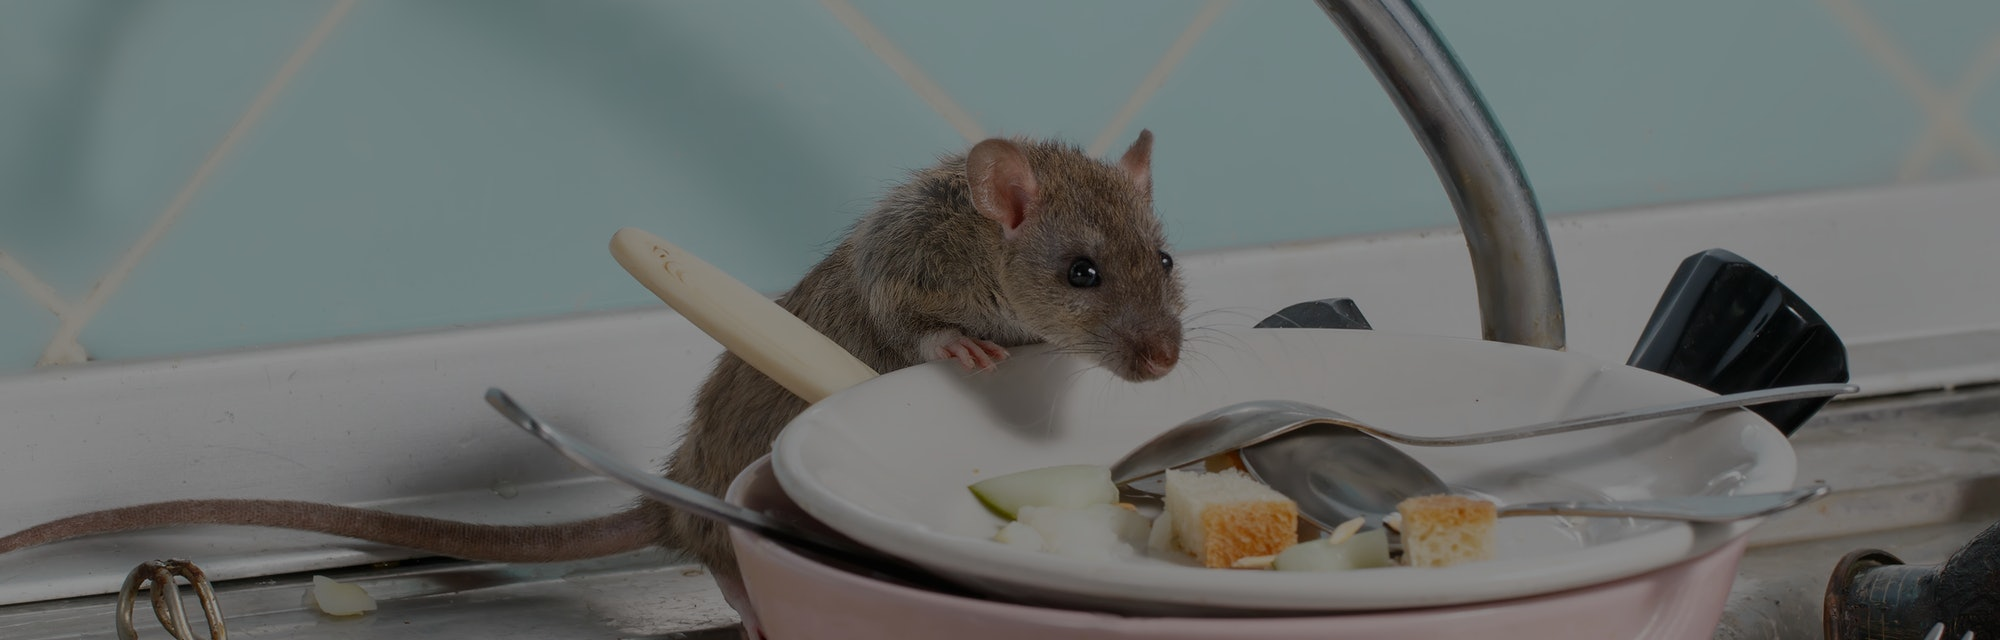 Young rat (Rattus norvegicus) climbs into the dish with the leftovers of food on a plate on sink at ...